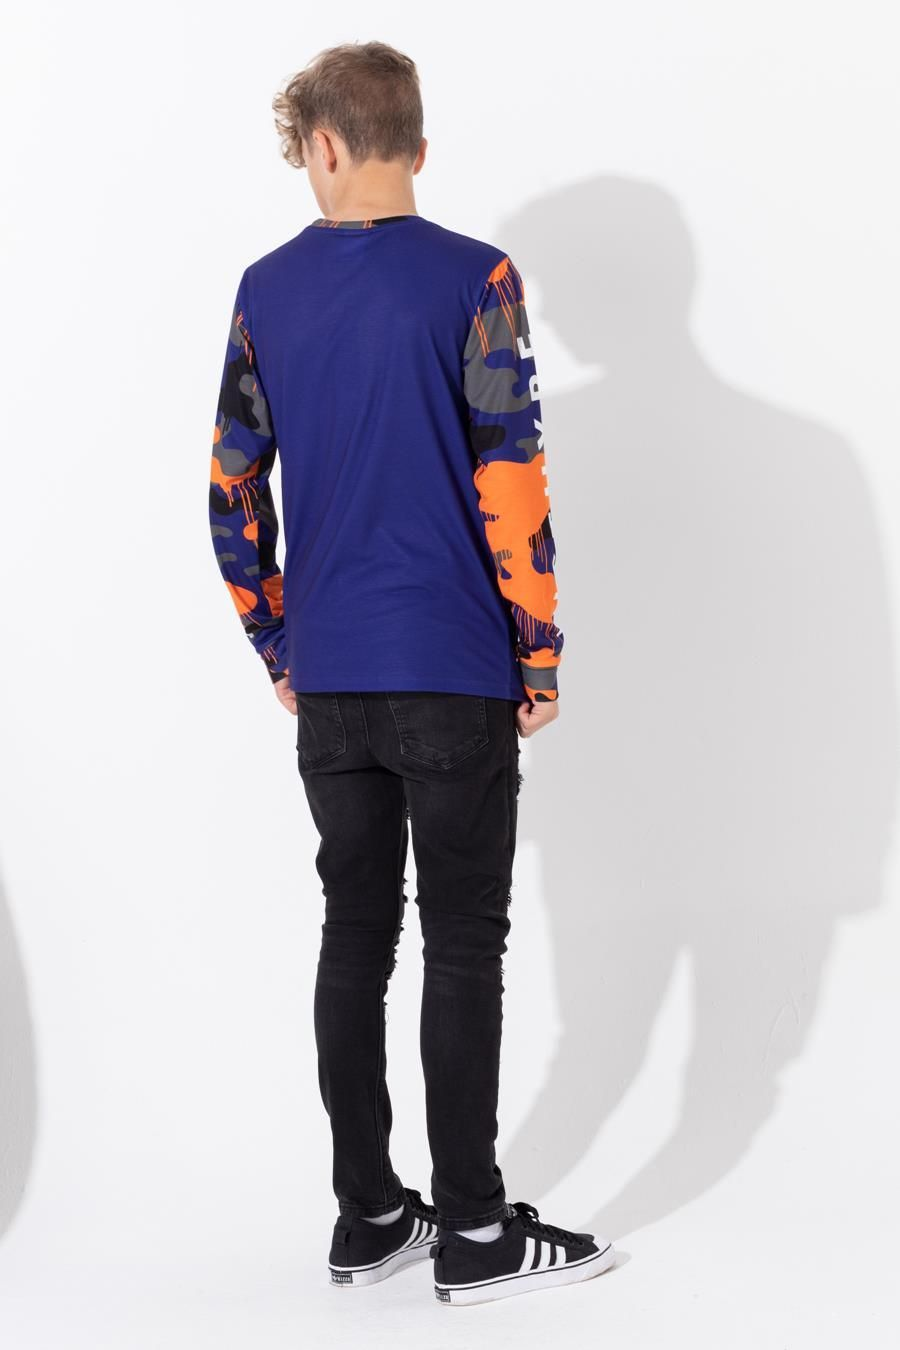 HYPE CAMO DRIPS KIDS L/S T-SHIRT